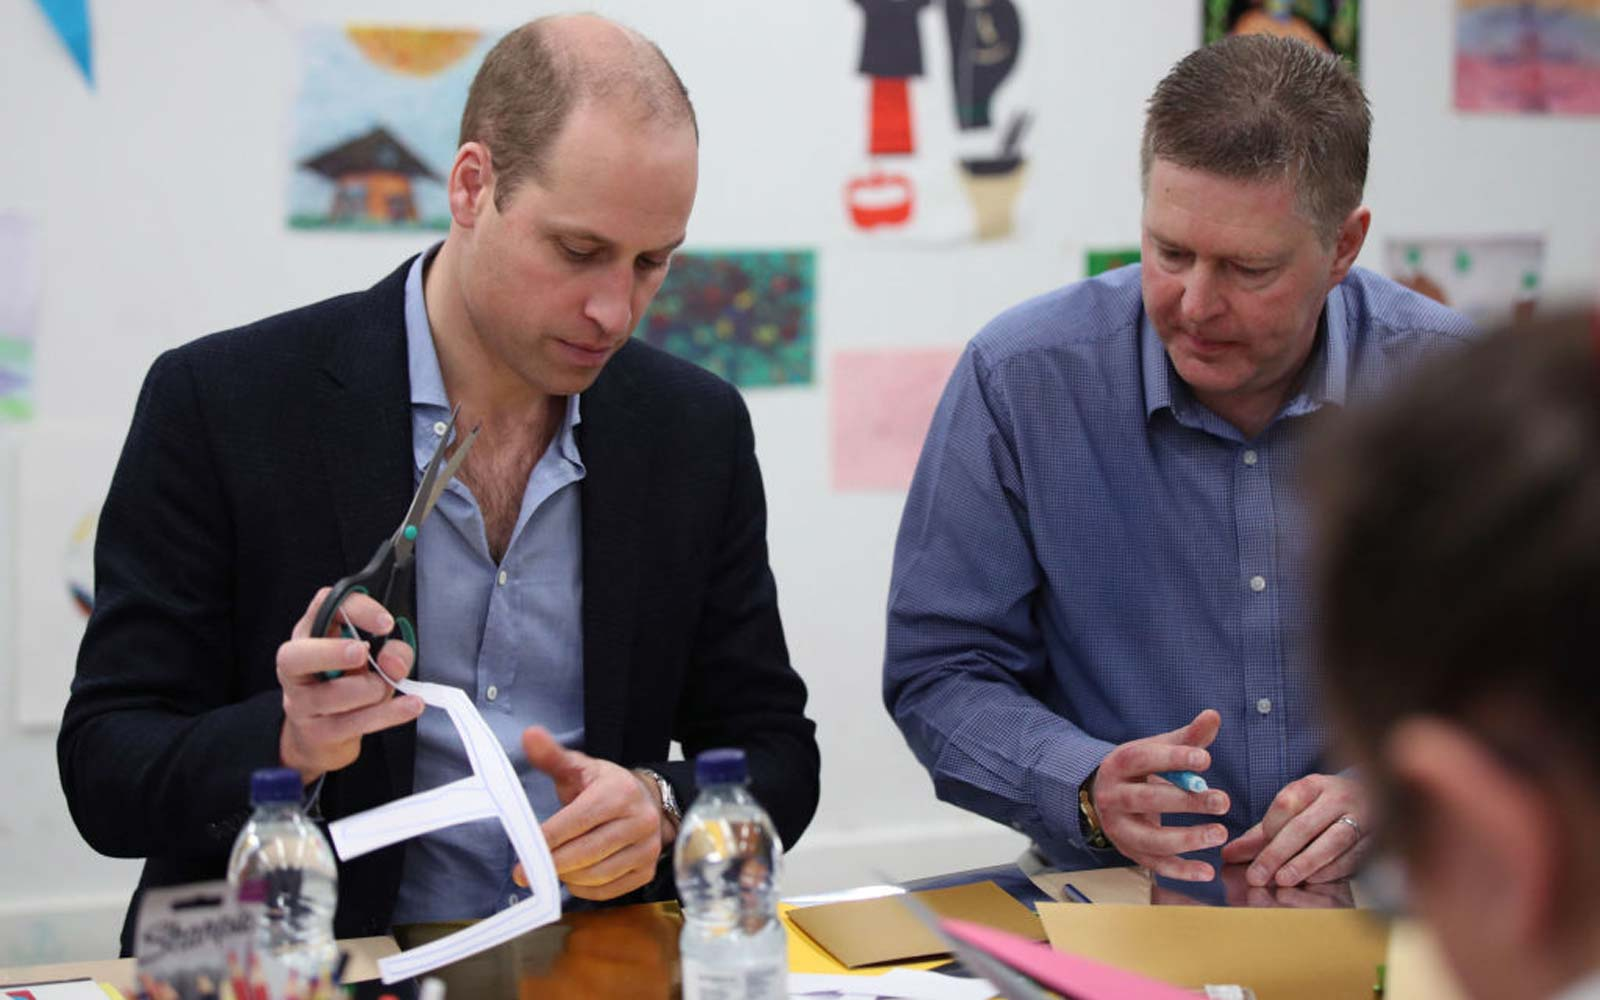 Prince William, Duke of Cambridge alongside Mick Clarke, Chief Executive takes part in an arts and craft session